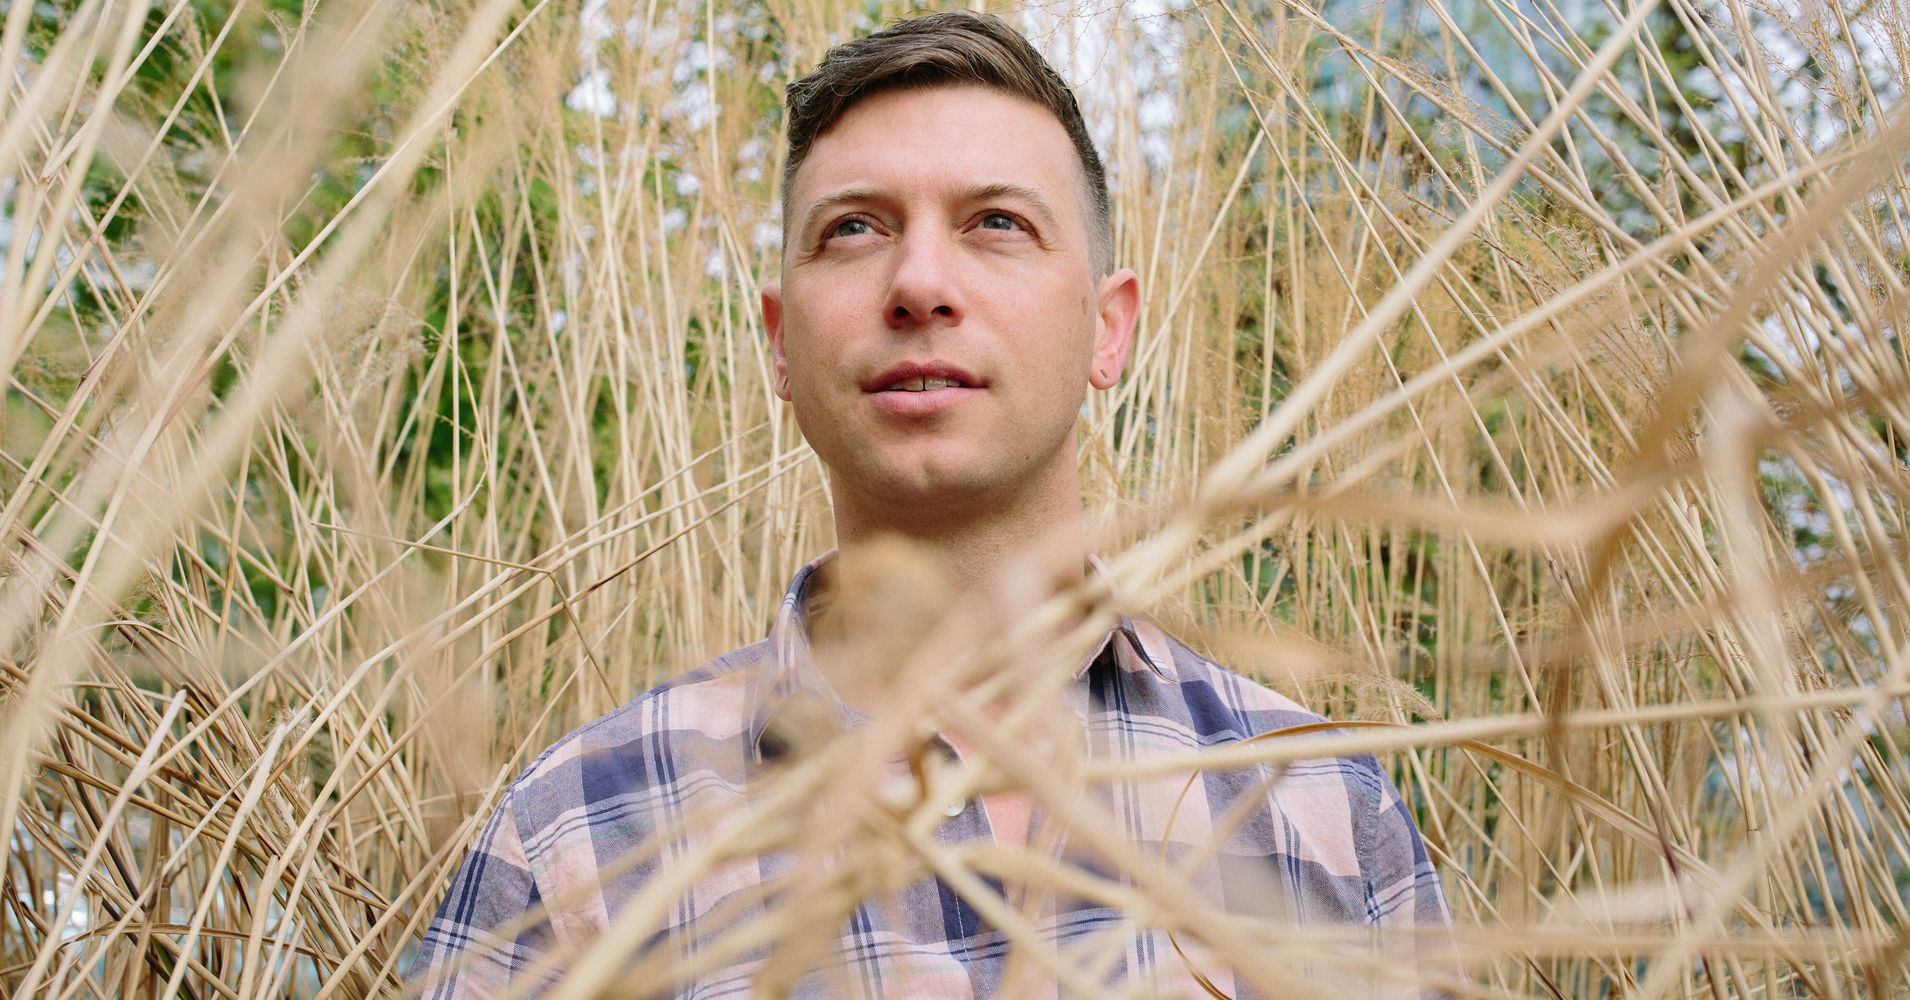 In Canada, Suicide Is The Leading Cause Of Death For Gay And Bisexual Men. This Epidemiologist Is Trying To Change That.